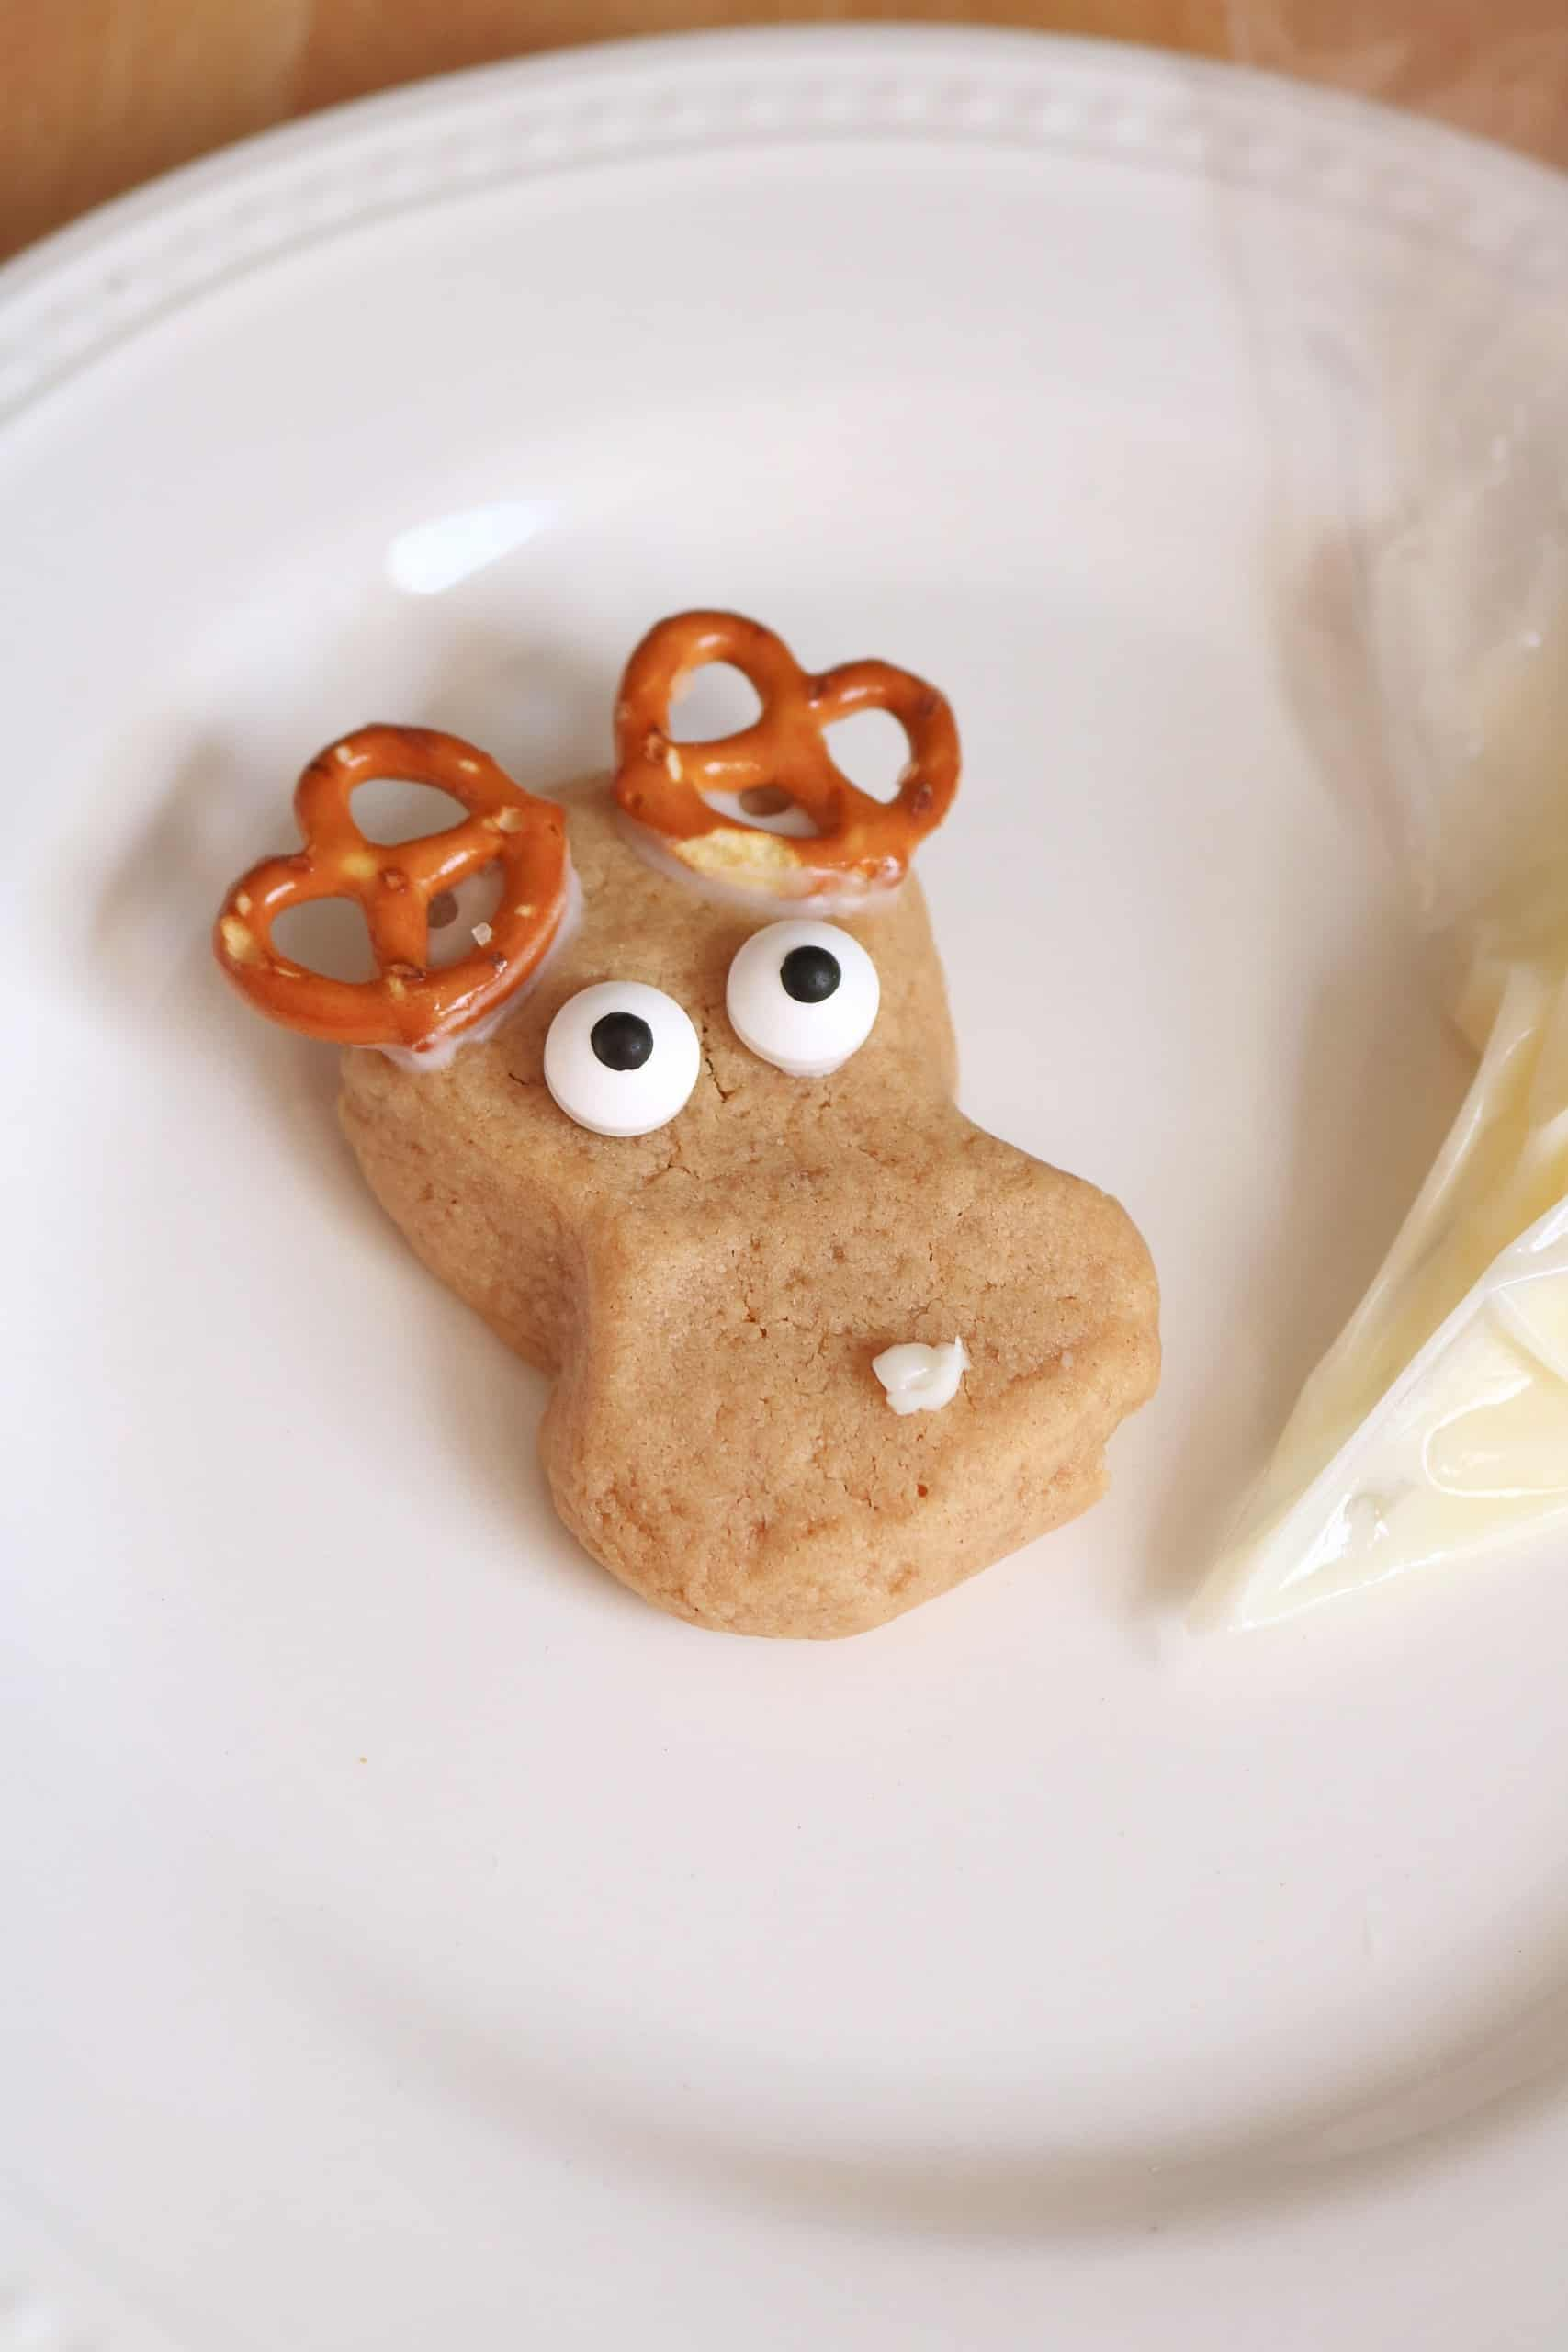 These Easy Peanut Butter Reindeer Cookies are made with my delicious homemade peanut butter cookie dough and decorated with pretzels, candy eyes, melted white chocolate, and M&Ms. Kids and adults will love these yummy, cute, and fun reindeer Christmas cookies! #christmascookies #cookies #reindeercookies #peanutbuttercookies